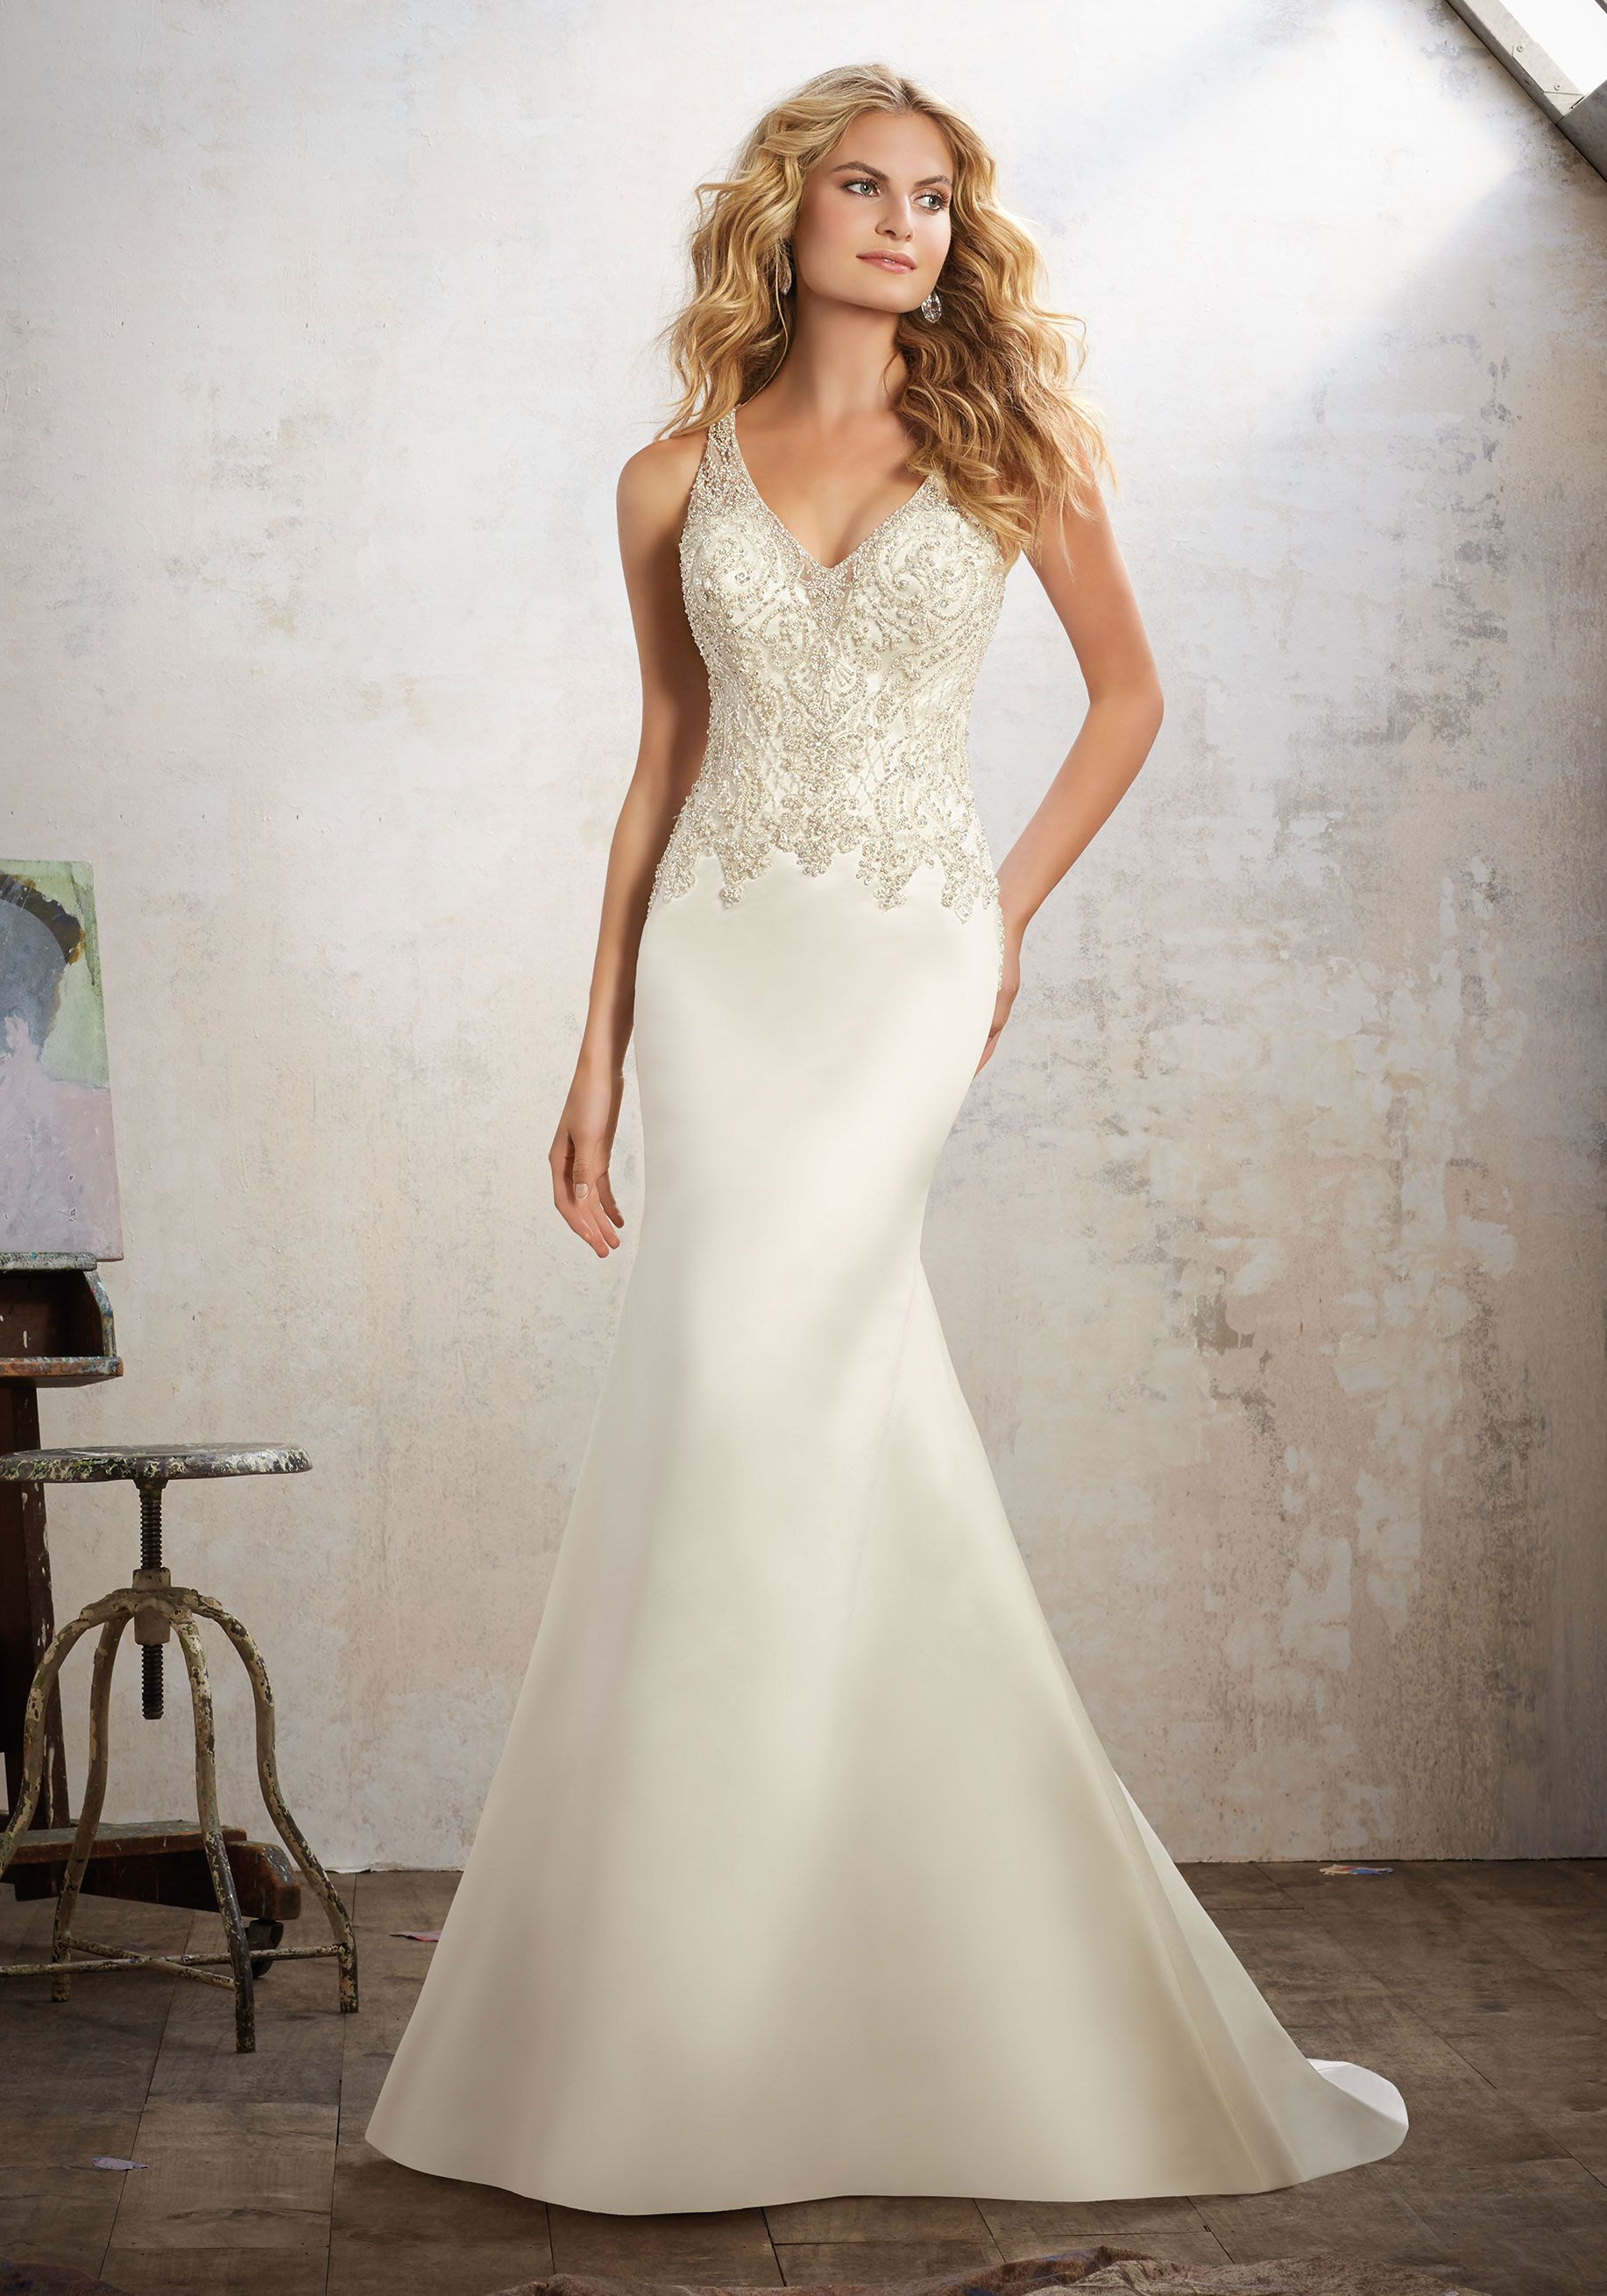 Morilee By Madeline Gardner Maria 8121 Elegant Fit Flare Wedding Gown Features